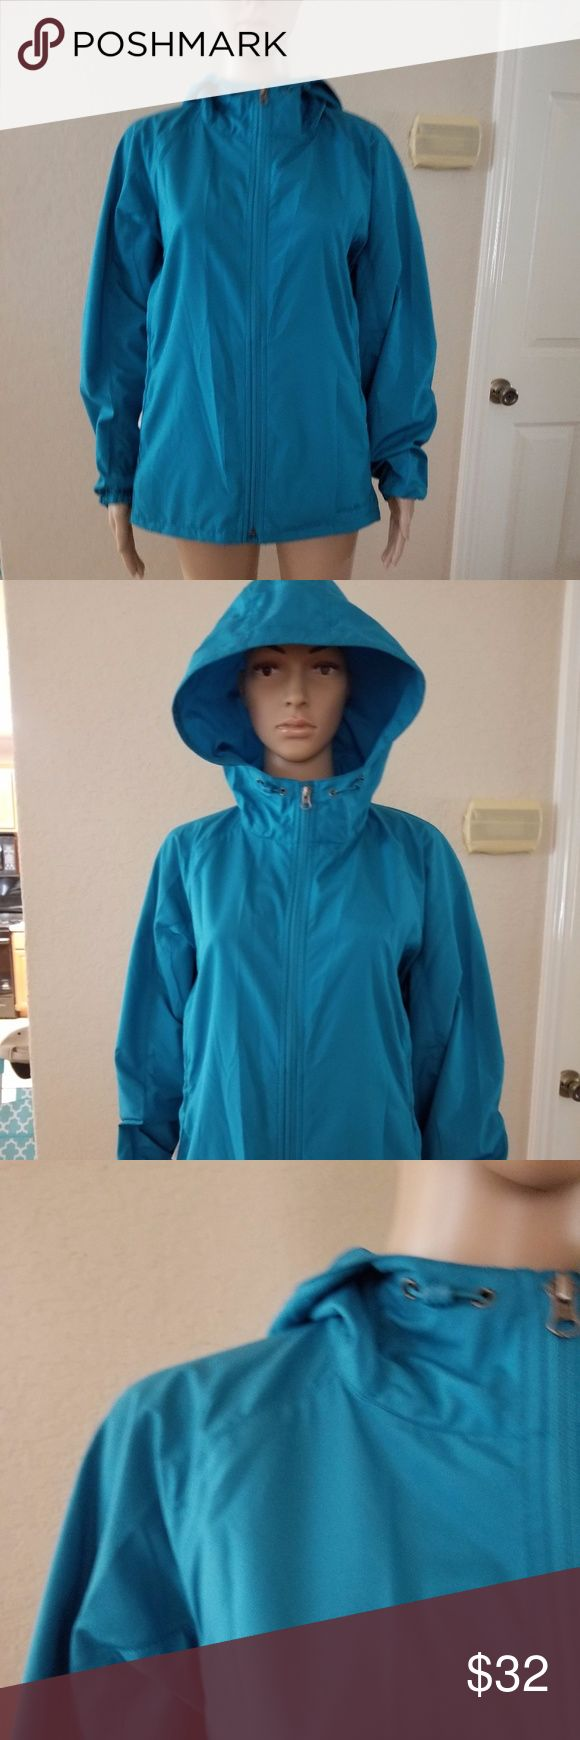 "Eddie Bauer women's Windbreaker Jacket For your consideration:   Eddie Bauer women's Windbreaker Jacket with vented cape.  Color Teal Blue   Size large  Measurement approximately are:  Underarm to underarm 19.5""  Front length from shoulder to hem: 25.5"" Eddie Bauer Jackets & Coats Utility Jackets"